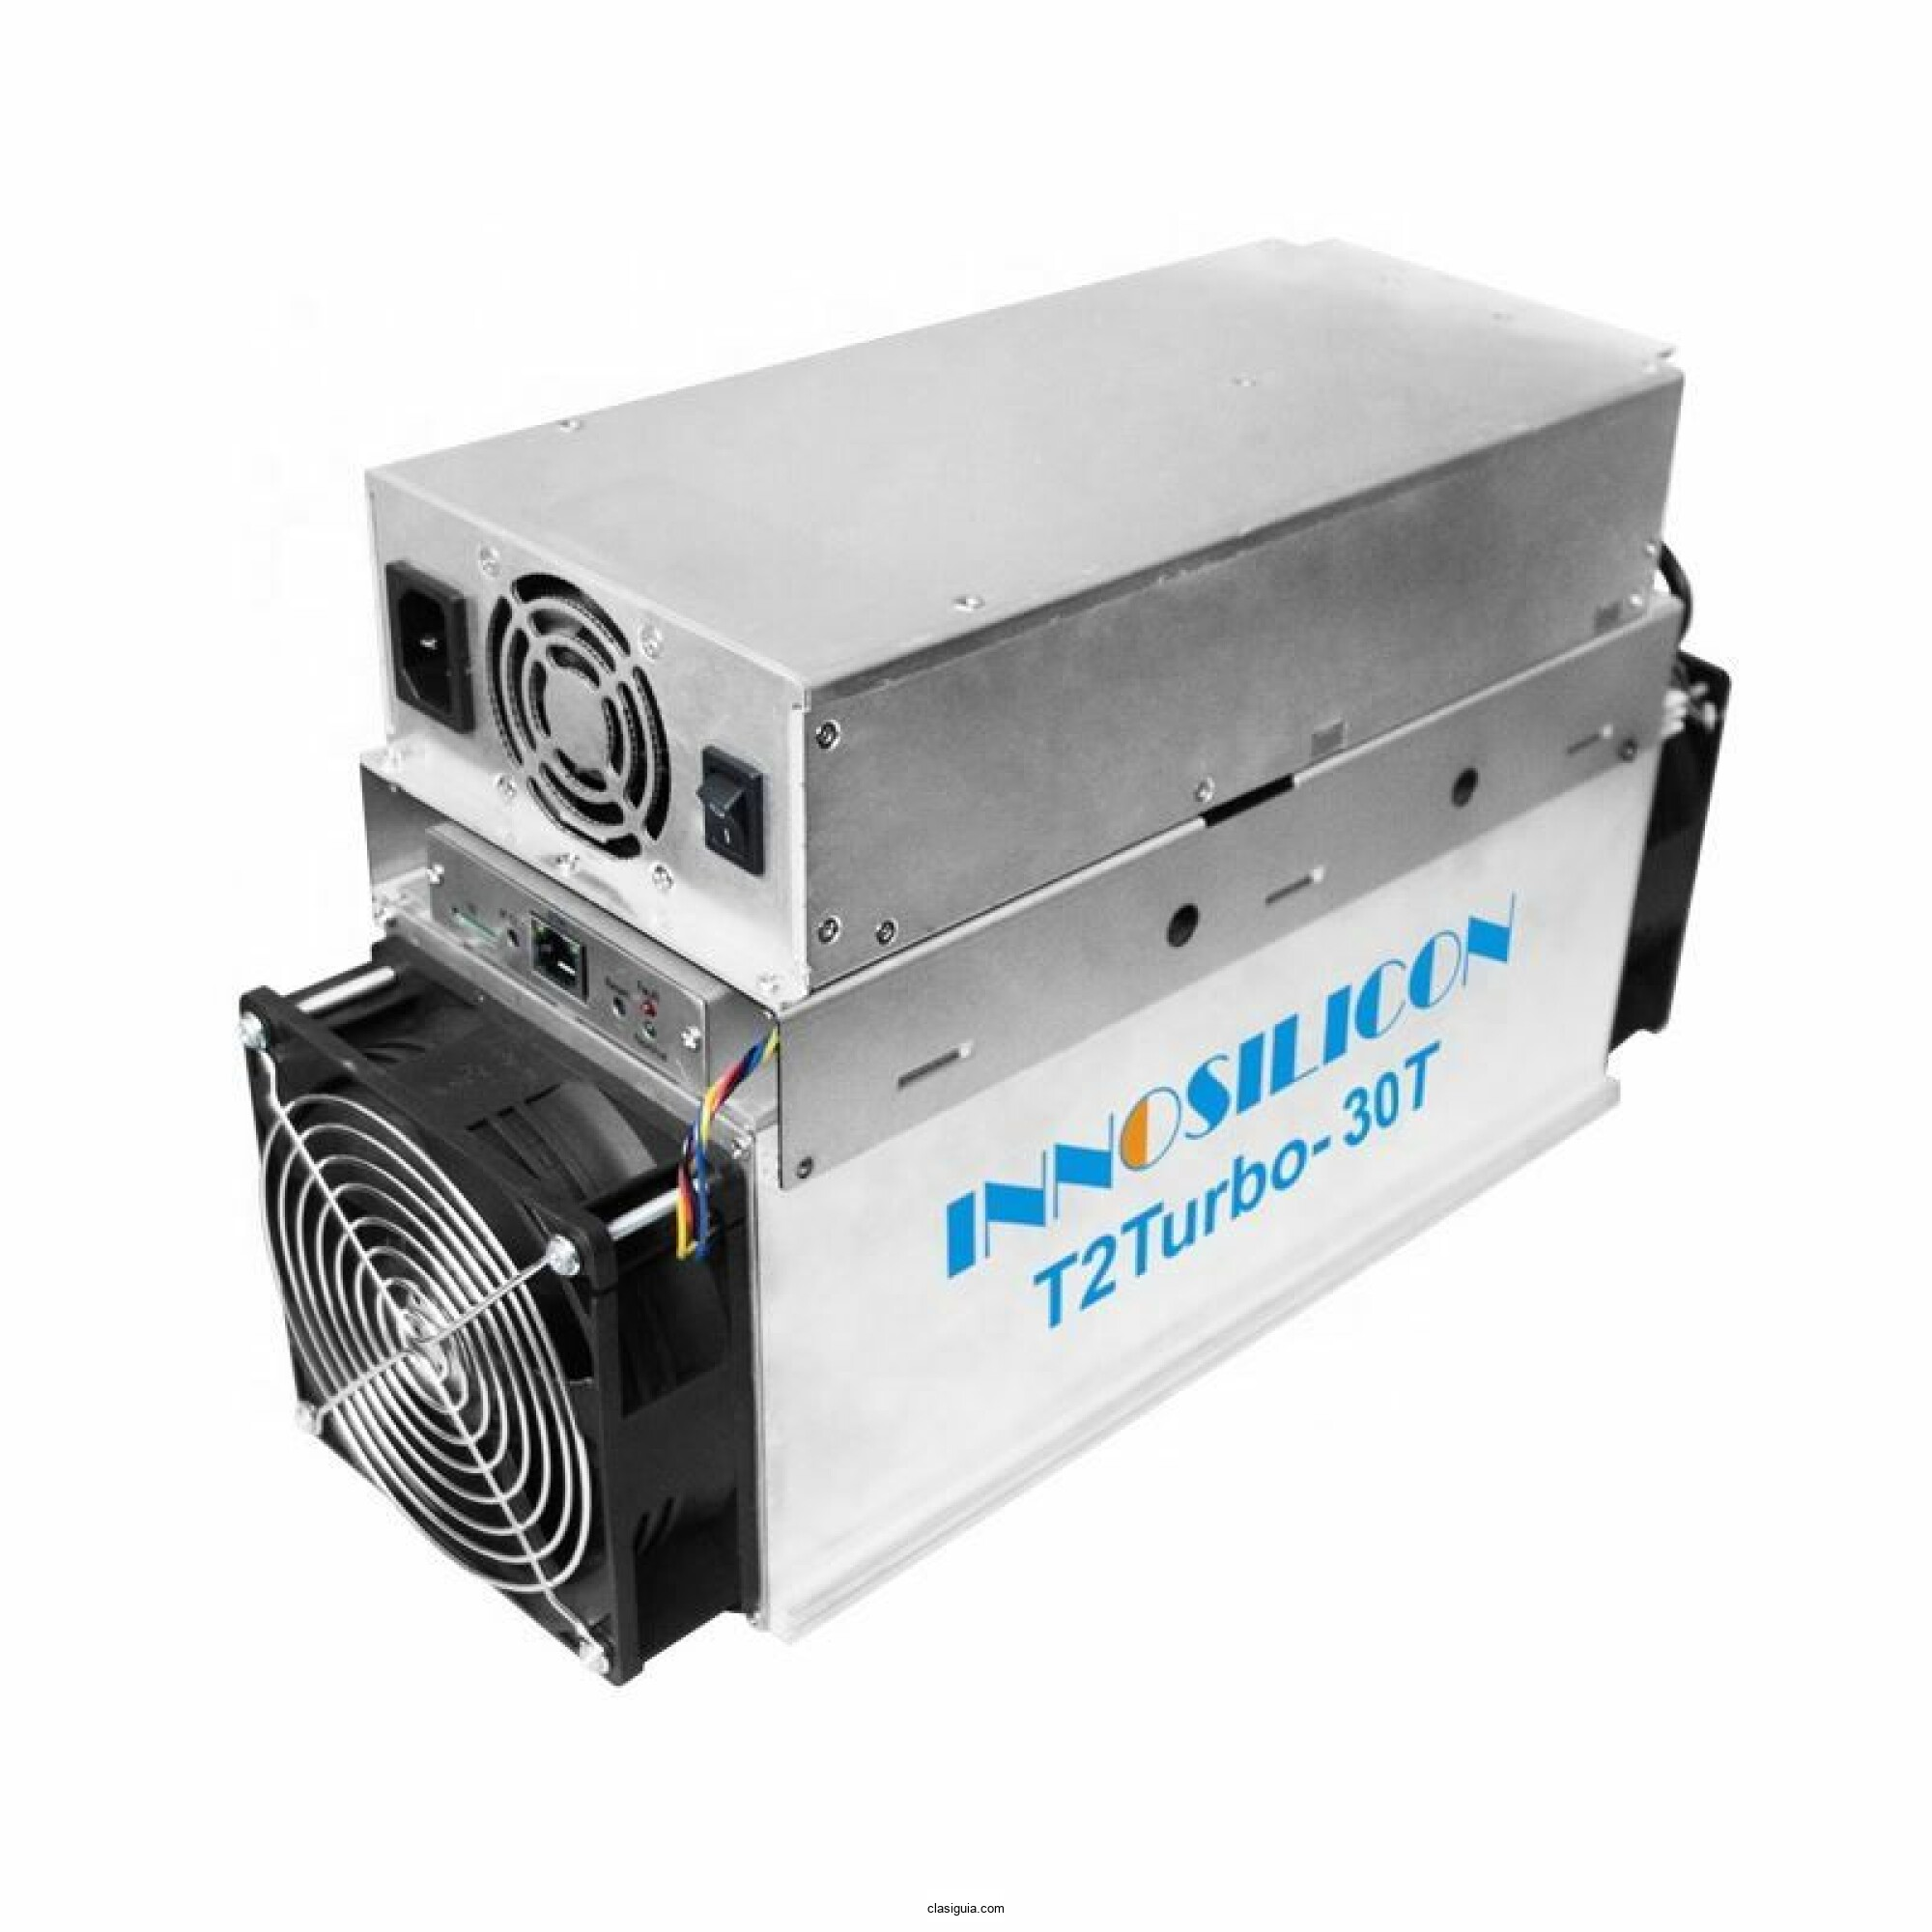 Buy Asic,Bitmain,Canaan Antminers Psu,and Graphic cards For Games and Mining Bitcoins